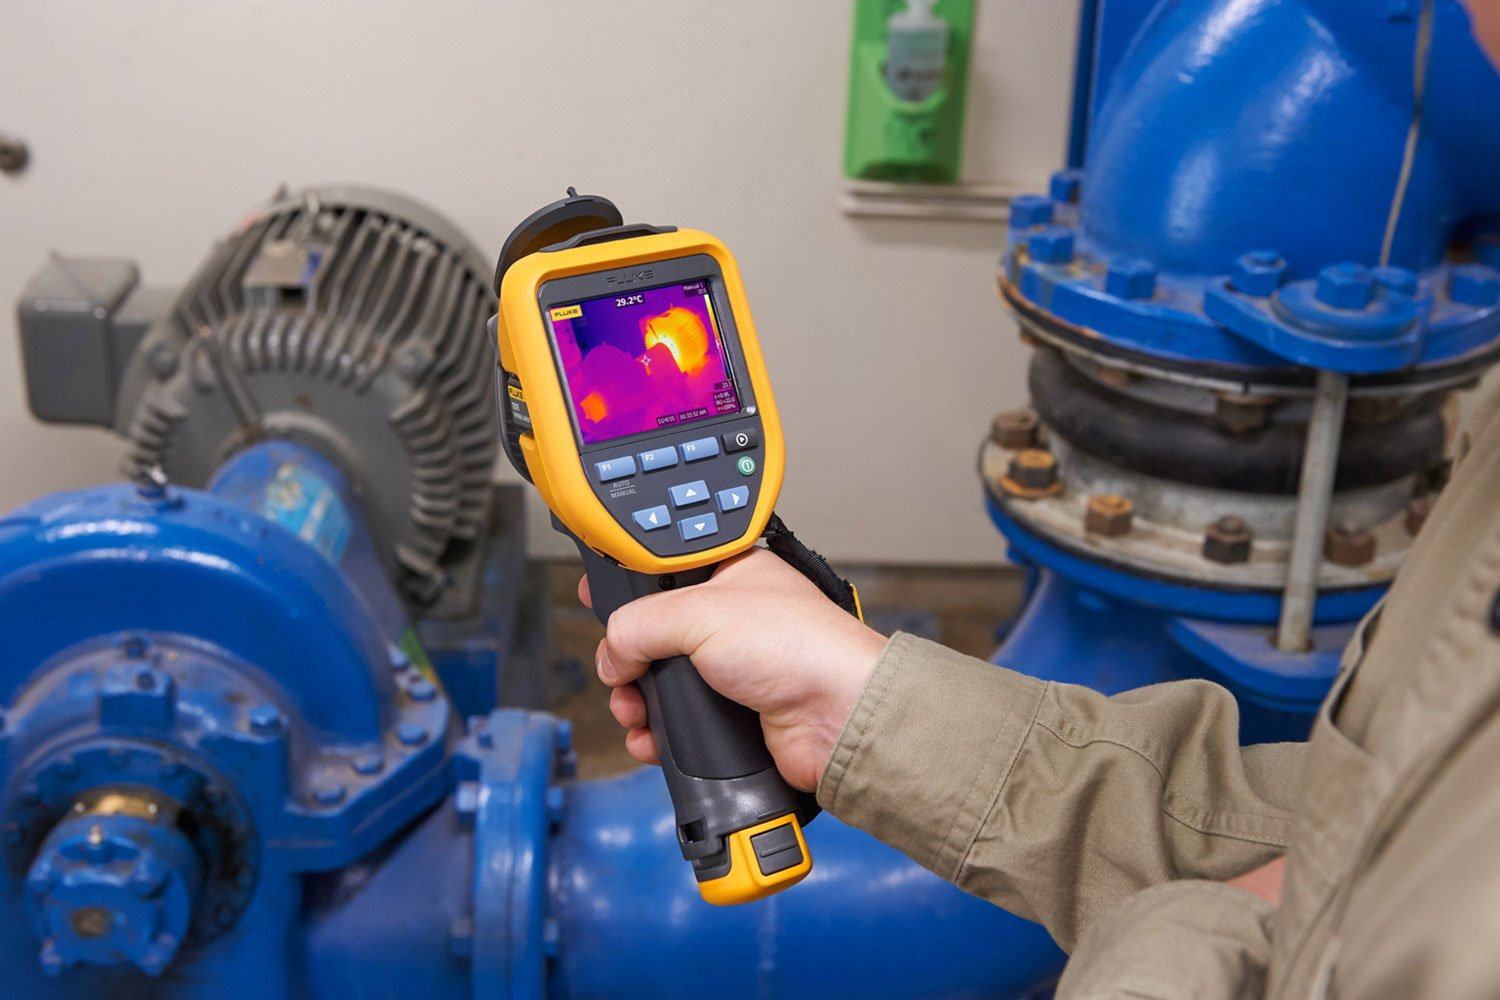 Thermal cameras help speed troubleshooting and preventive maintenance